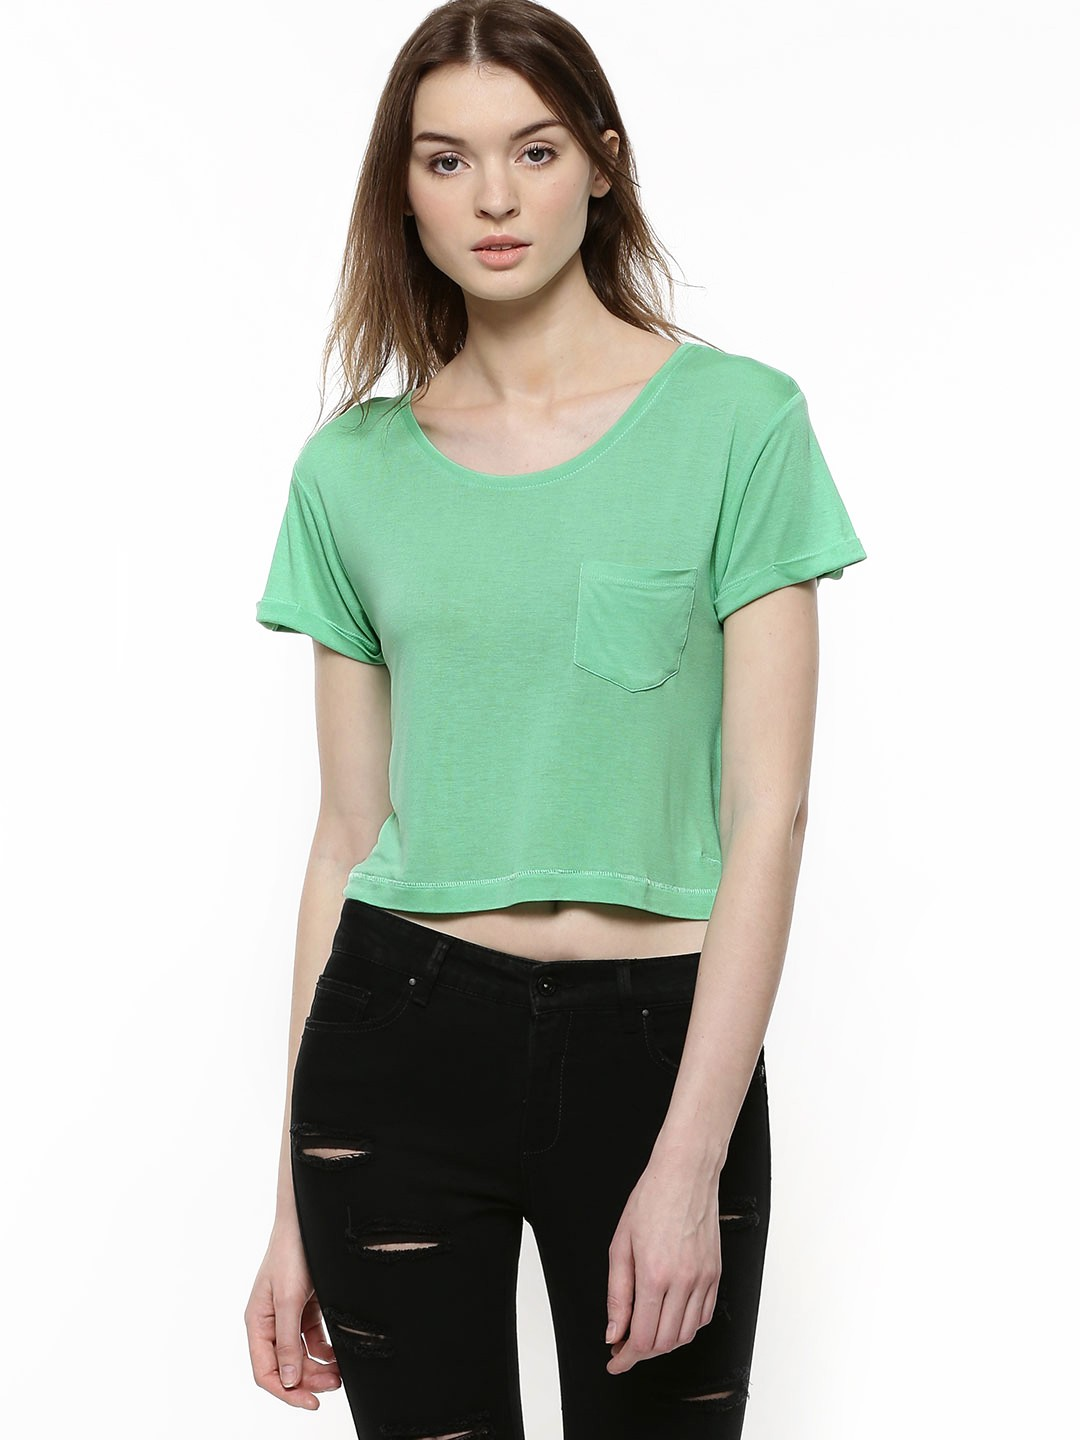 Looking for women's crop tops in a variety of styles and fabrics including crop top t-shirts and cropped sweatshirts? Shop for crop tops for women at PacSun and enjoy free shipping on all orders over $50! My Account Buy One Get One 50% Off Now $ Now $ Now $ Now $ Now $ Now $ Now 30% Off Now 50% Off Shop By.